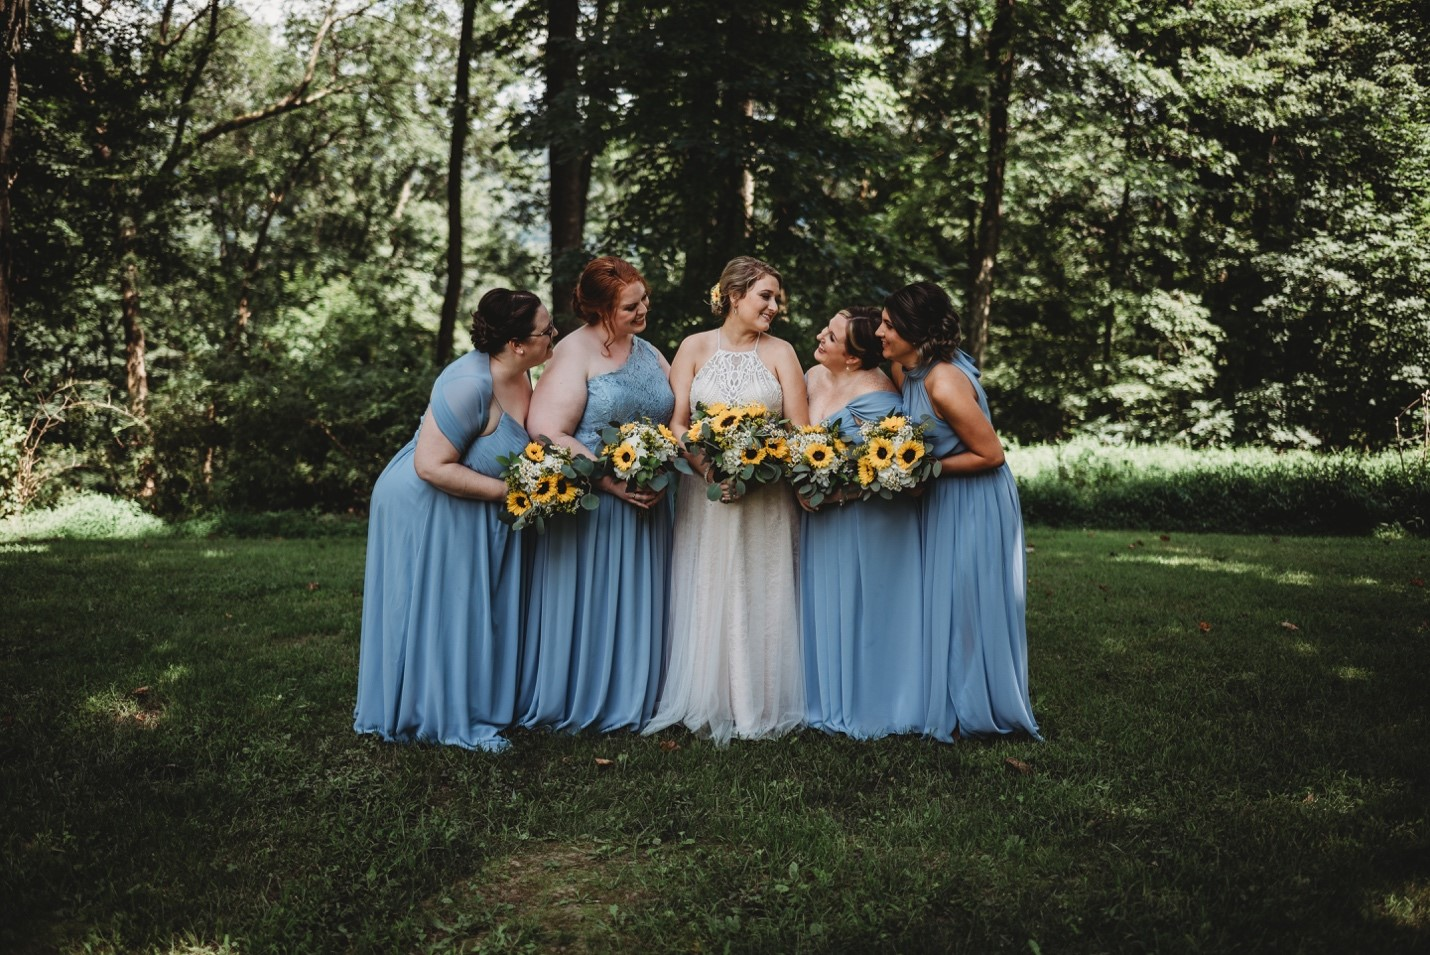 The Maids looking pretty in their steel blue dresses which looked gorgeous against the sunflower bouquets